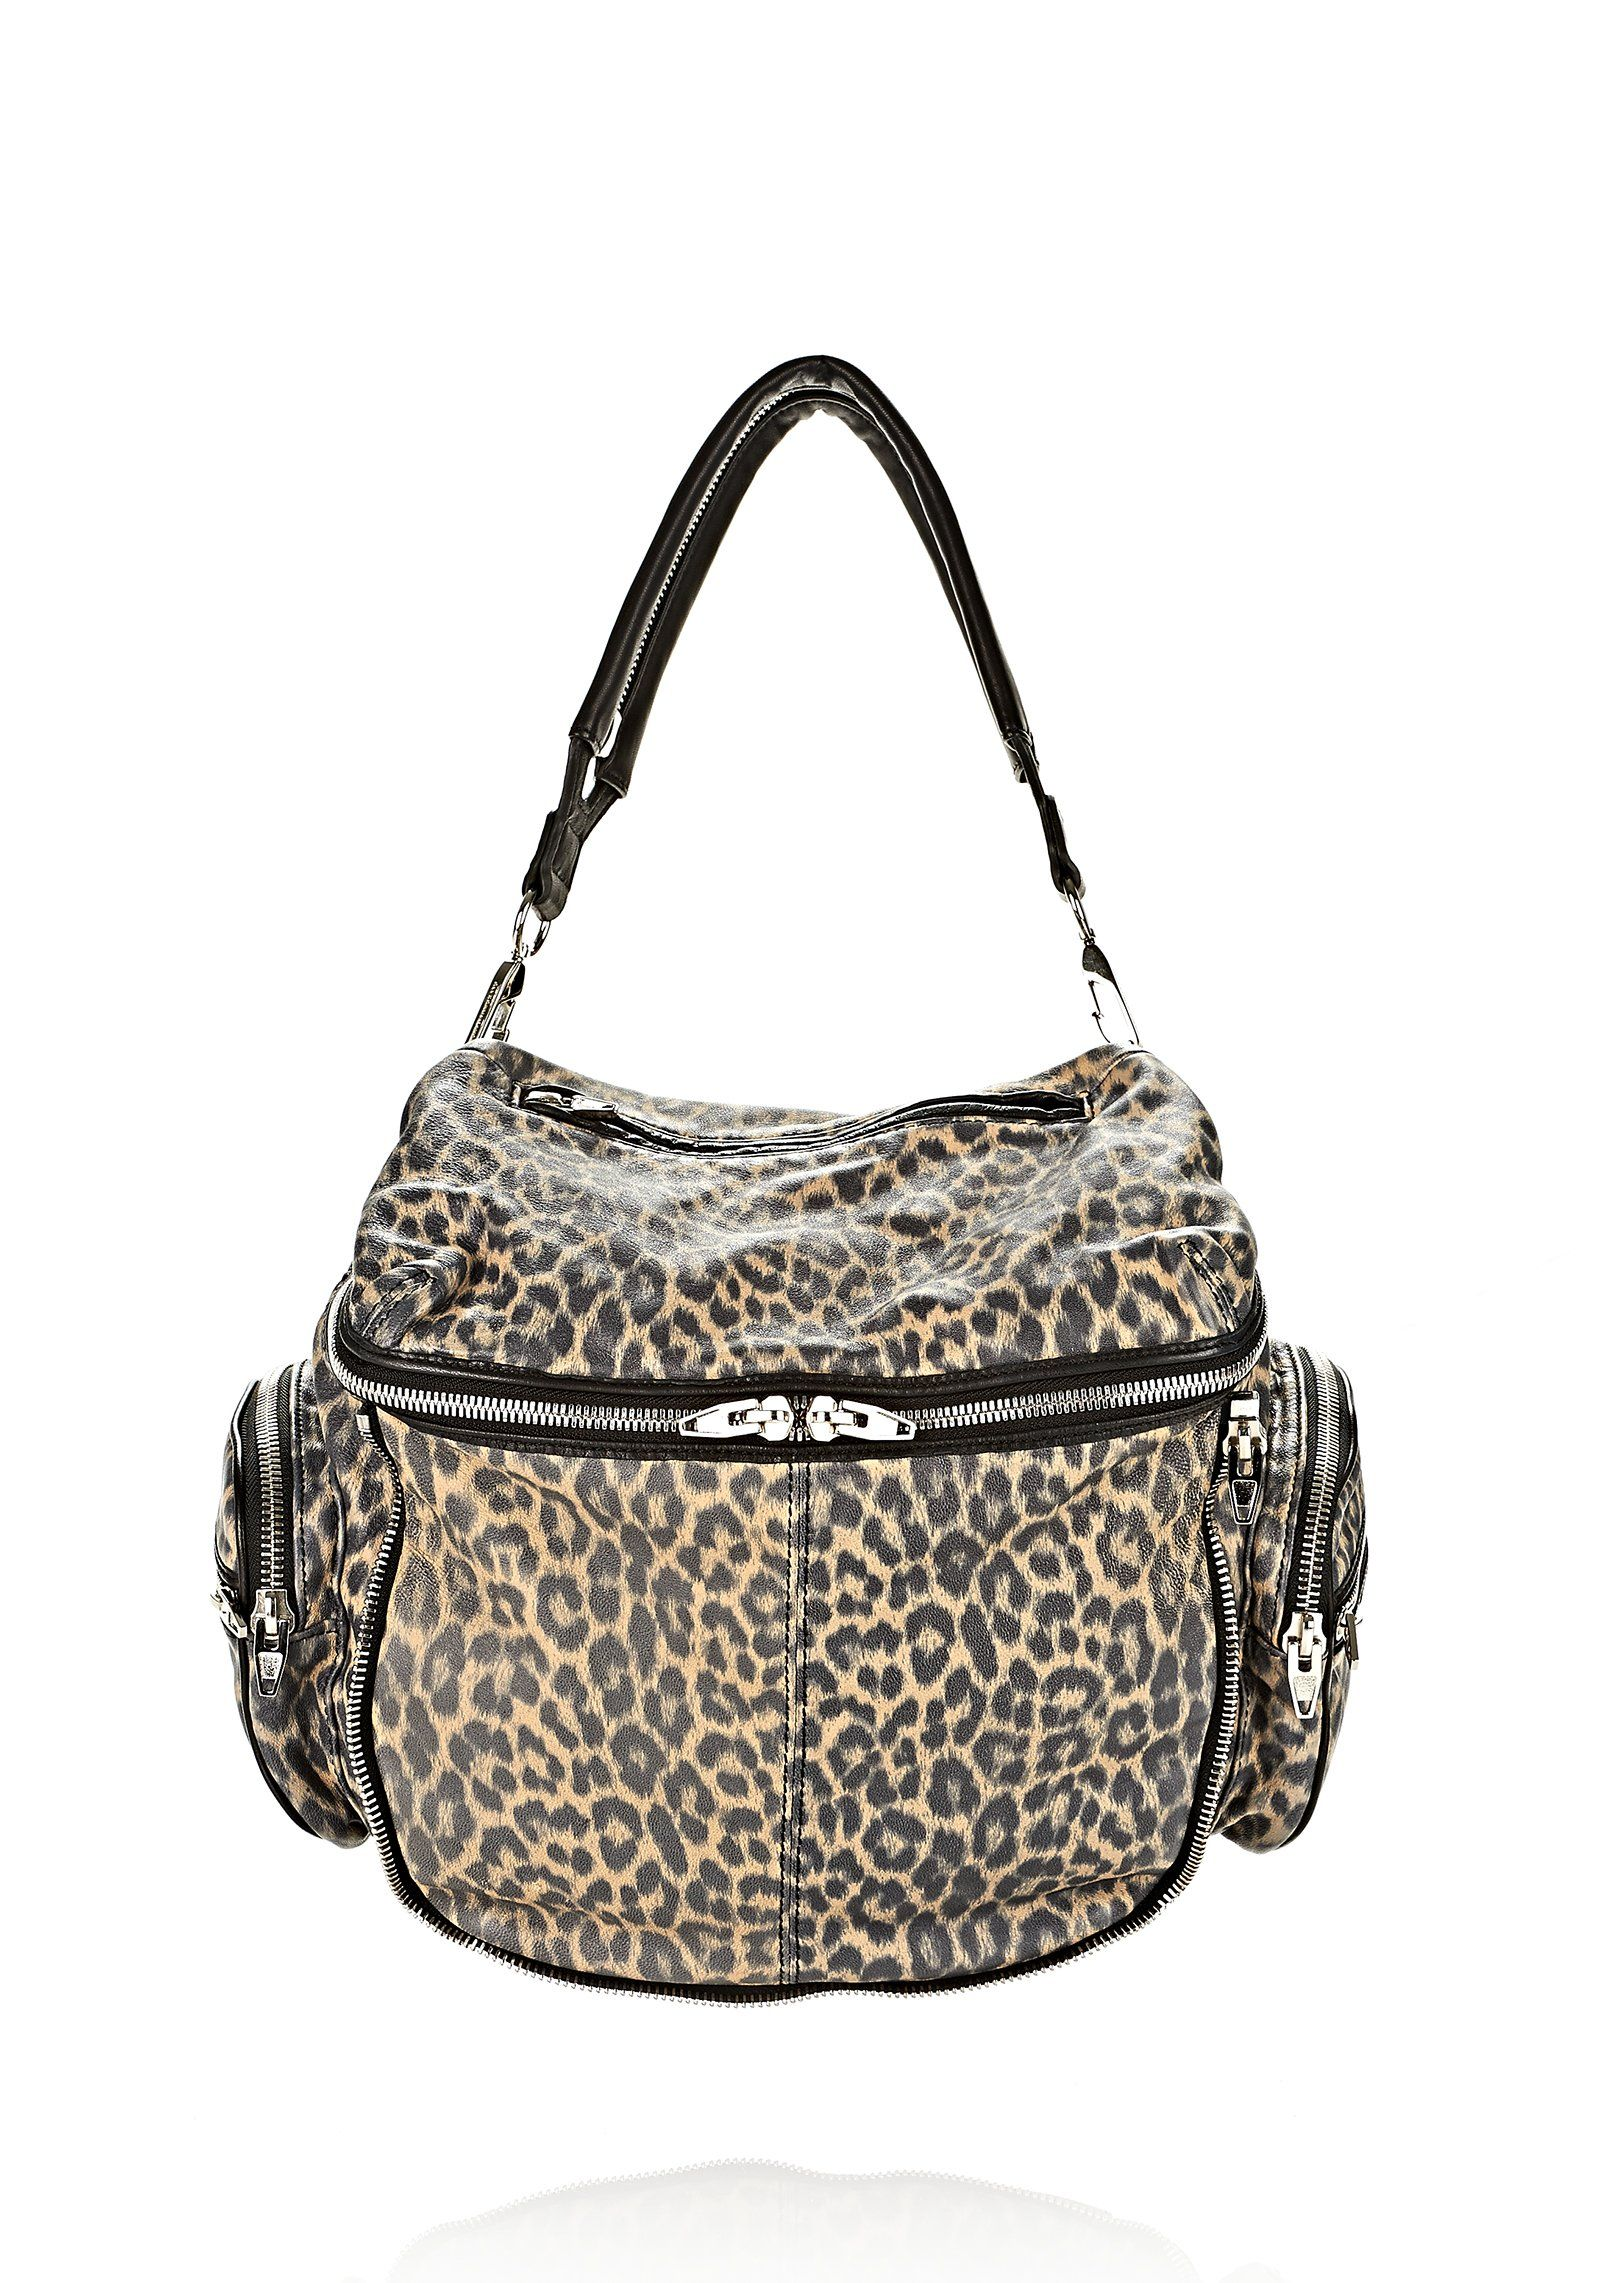 Beige Jane In Beige Leopard Print With Nickel - Alexander Wang